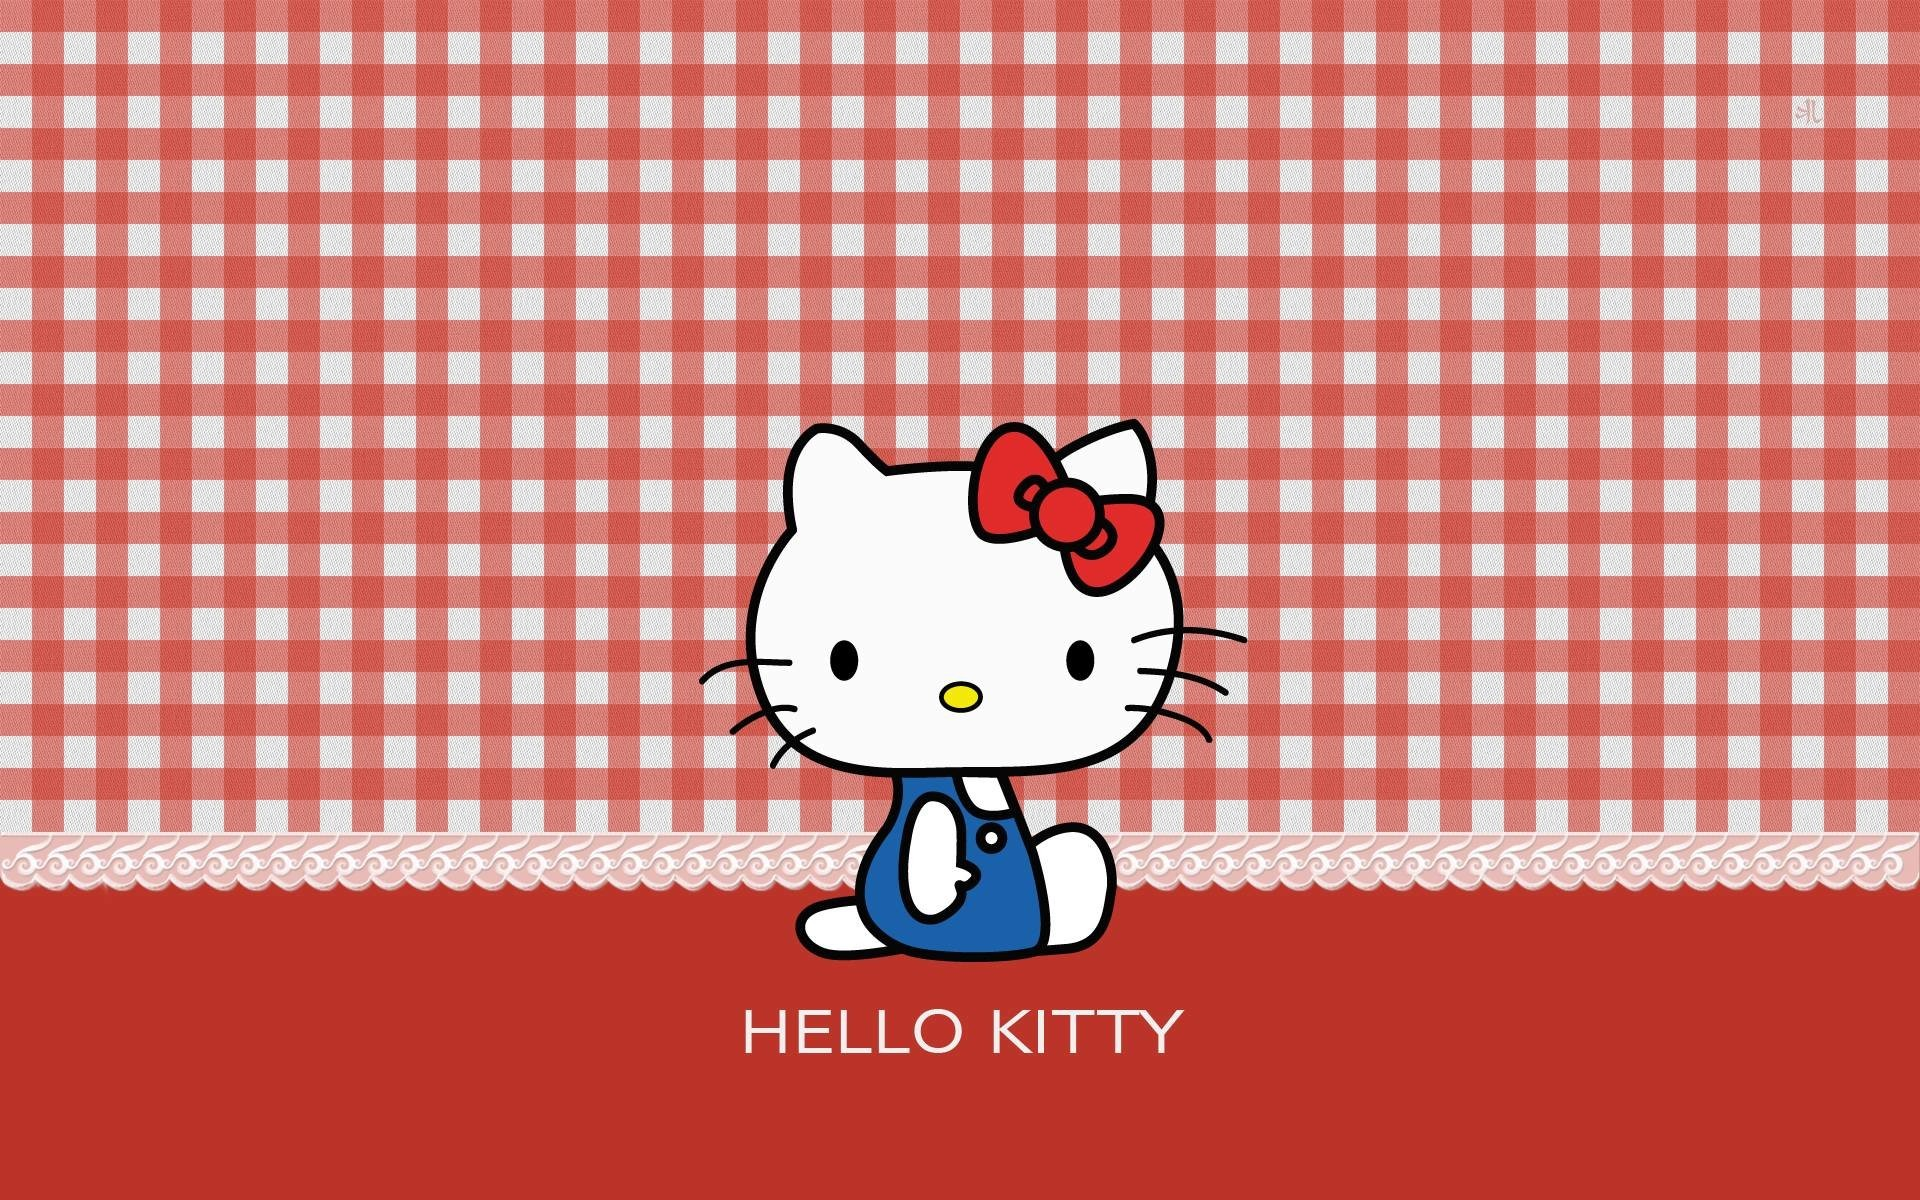 8379be44e 1920x1200 1920x1200 Hello Kitty Desktop Backgrounds Wallpapers - Wallpaper  Cave · 49 · Download · Hello ...